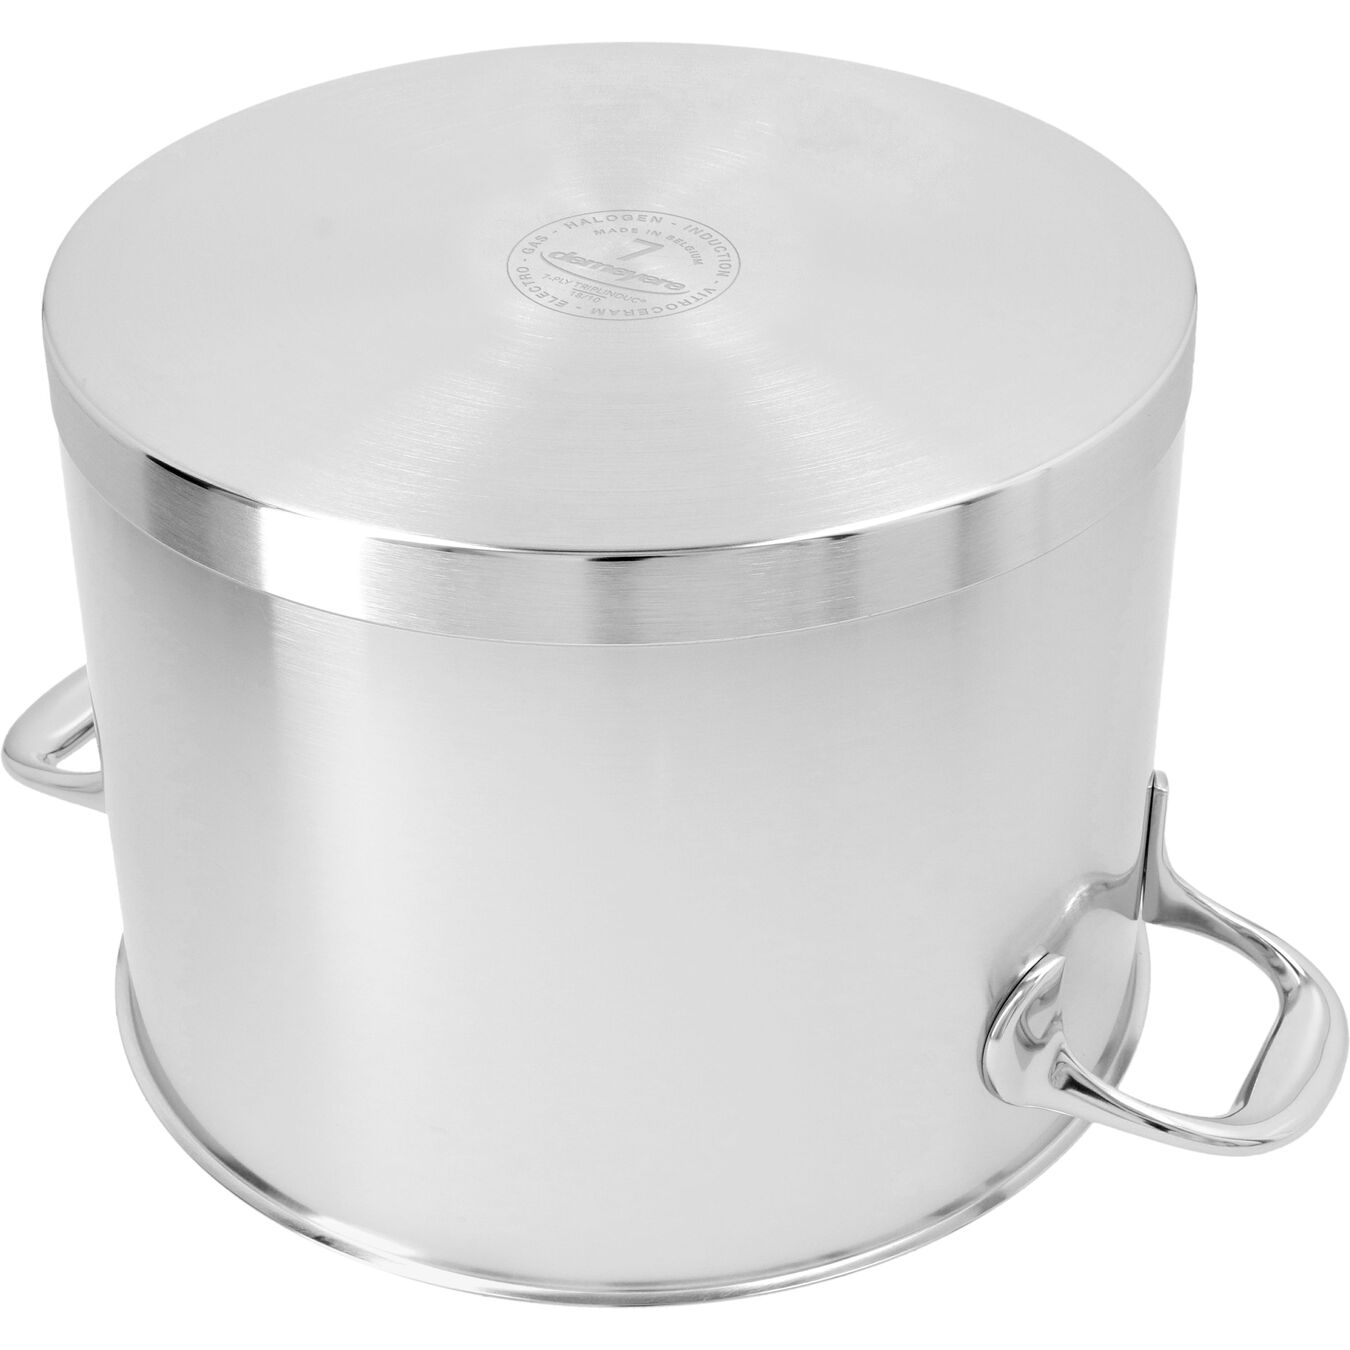 8.5 qt Stock pot with lid, 18/10 Stainless Steel ,,large 5